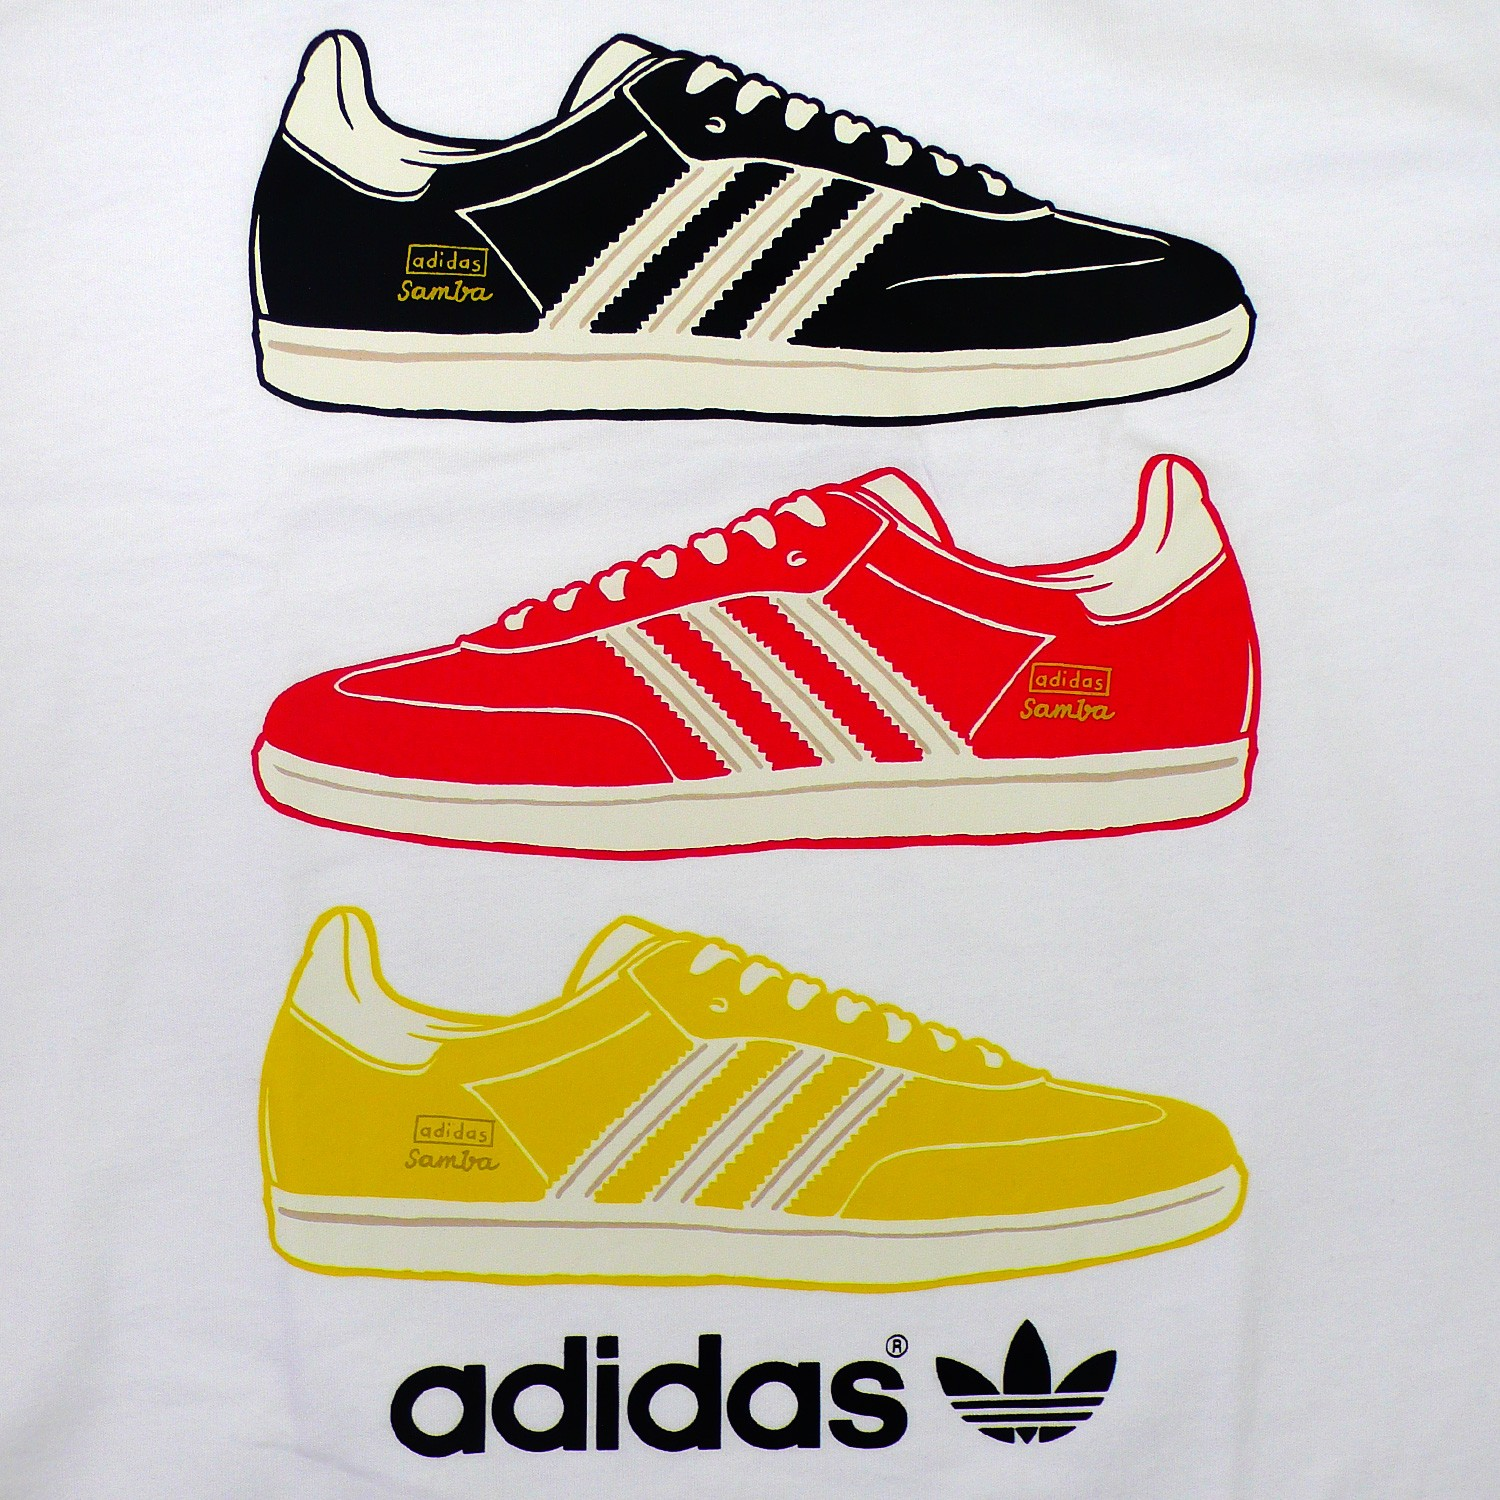 adidas originals country camiseta samba zapatos alemania. Black Bedroom Furniture Sets. Home Design Ideas